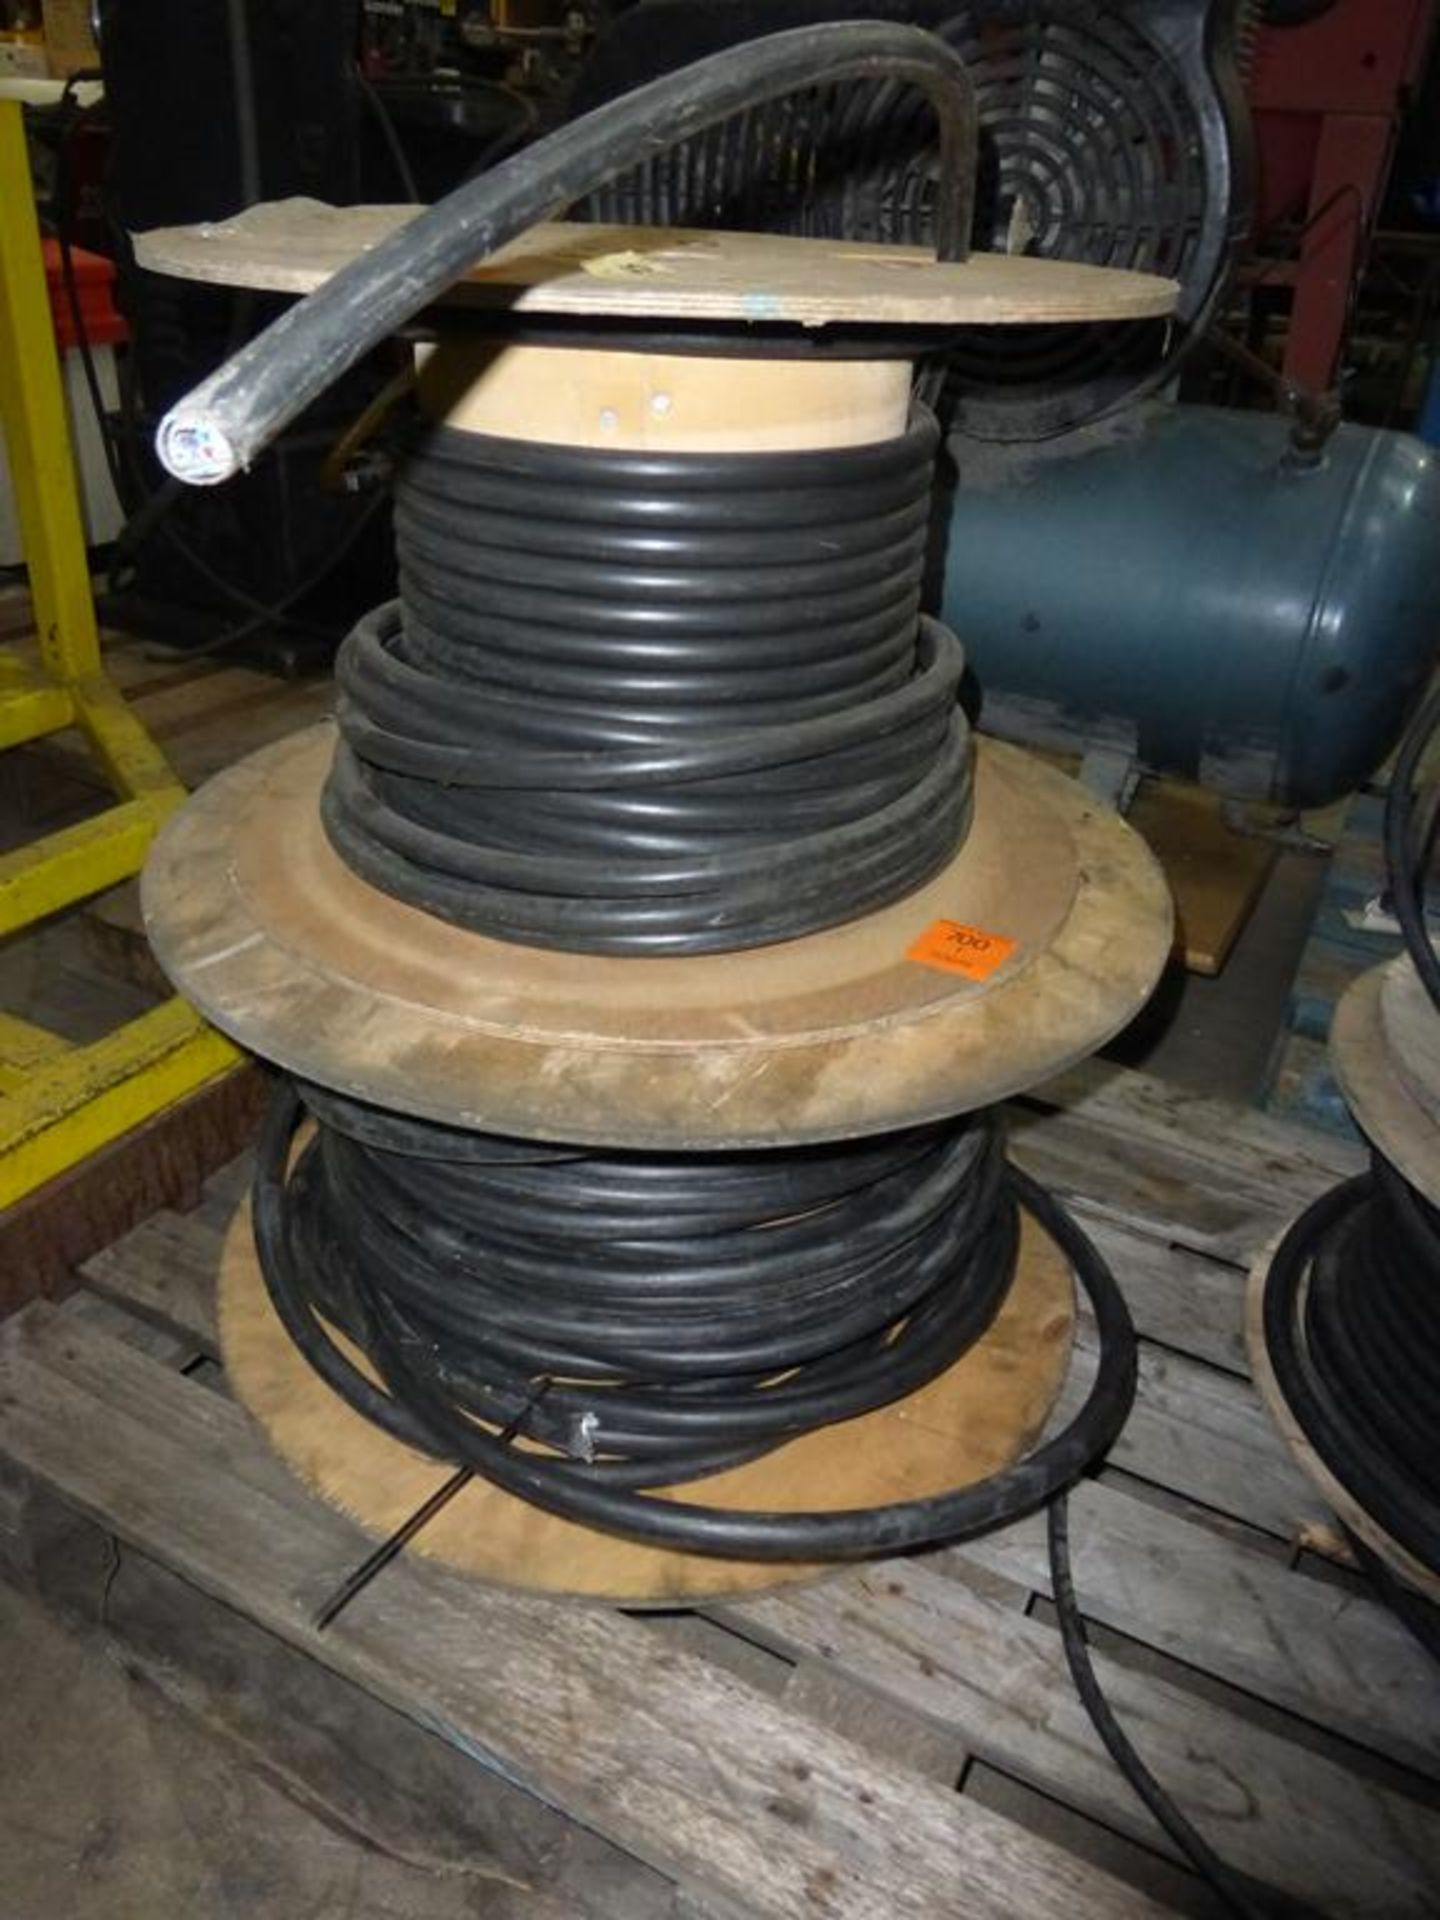 Lot 220 - 2 x Reels of Cable